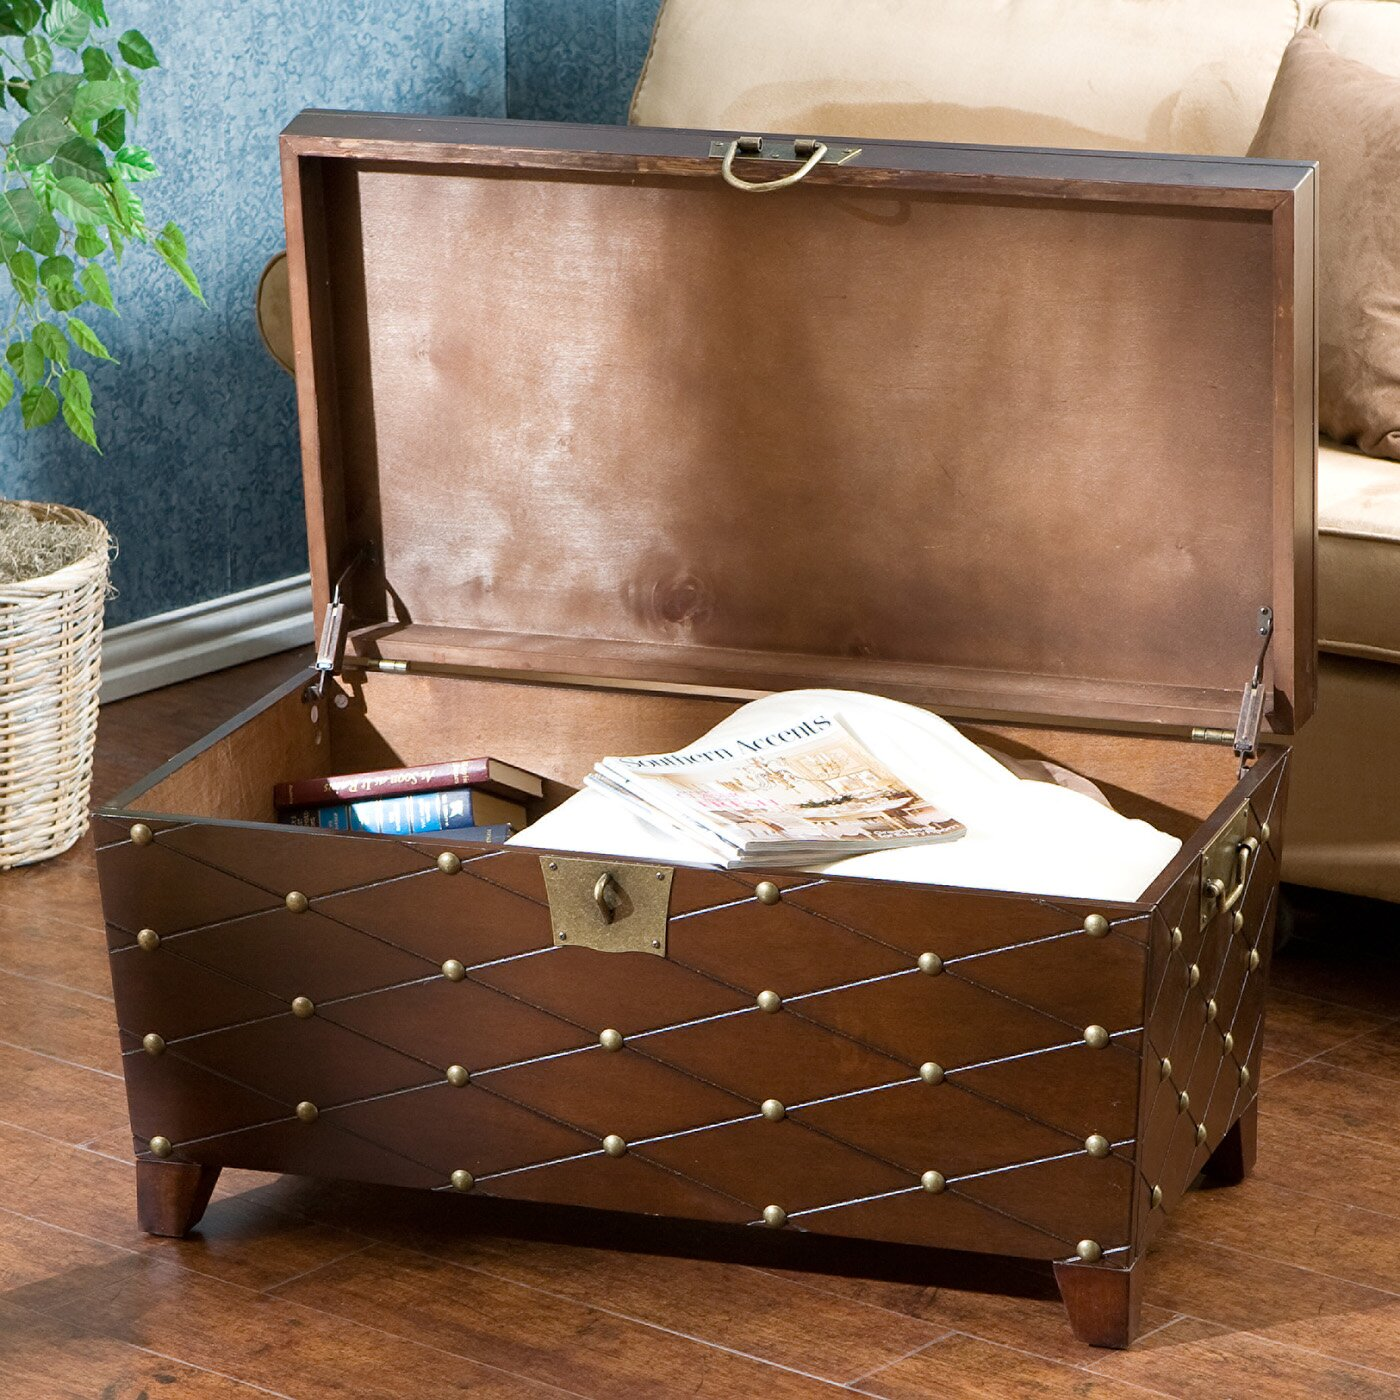 Beige Trunk Coffee Table: Astoria Grand Cainhoe Nailhead Trunk Coffee Table